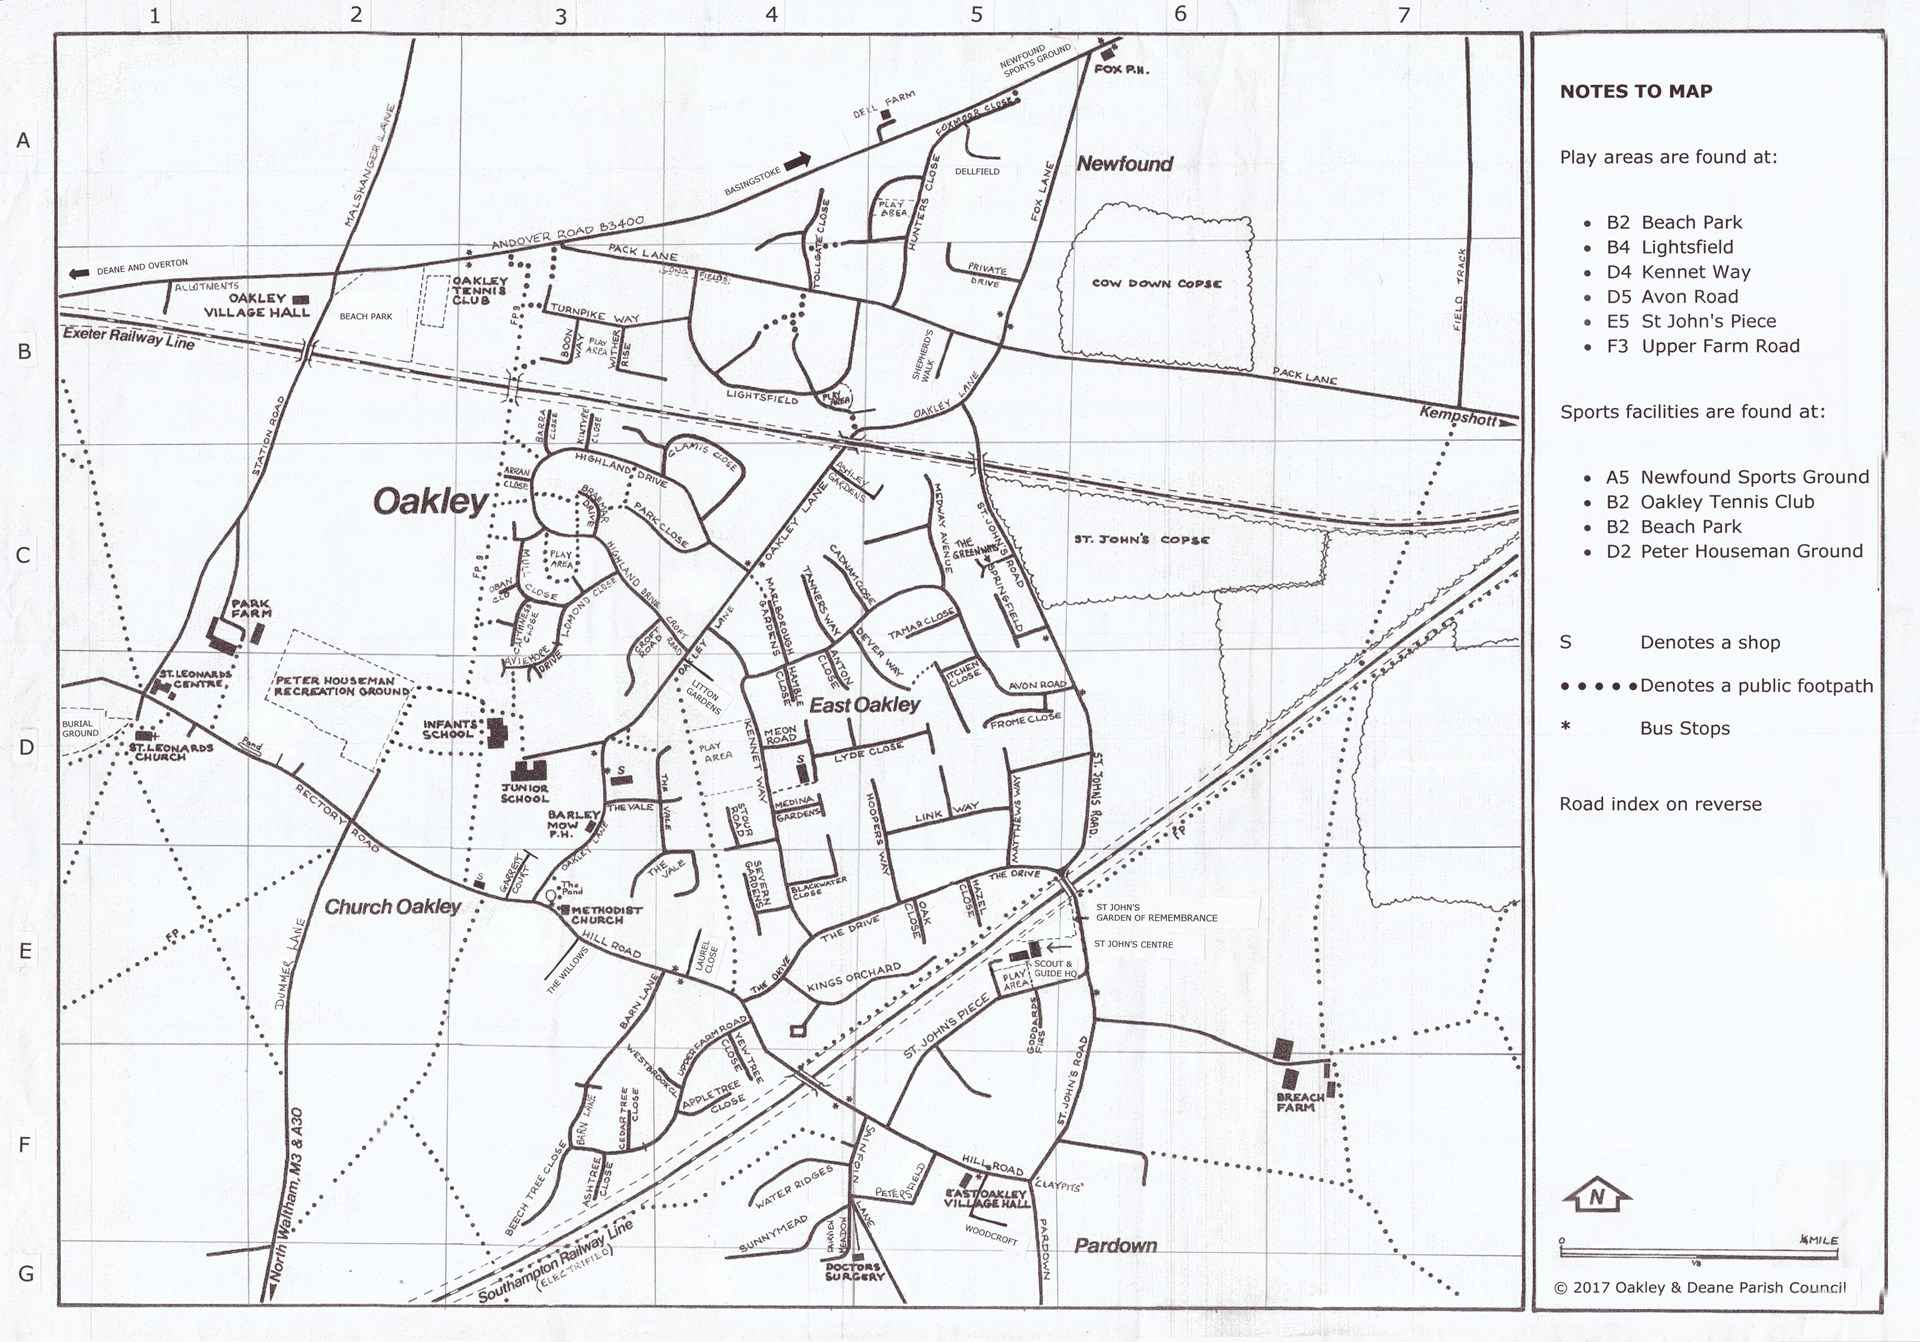 Street plan of the village of Oakley